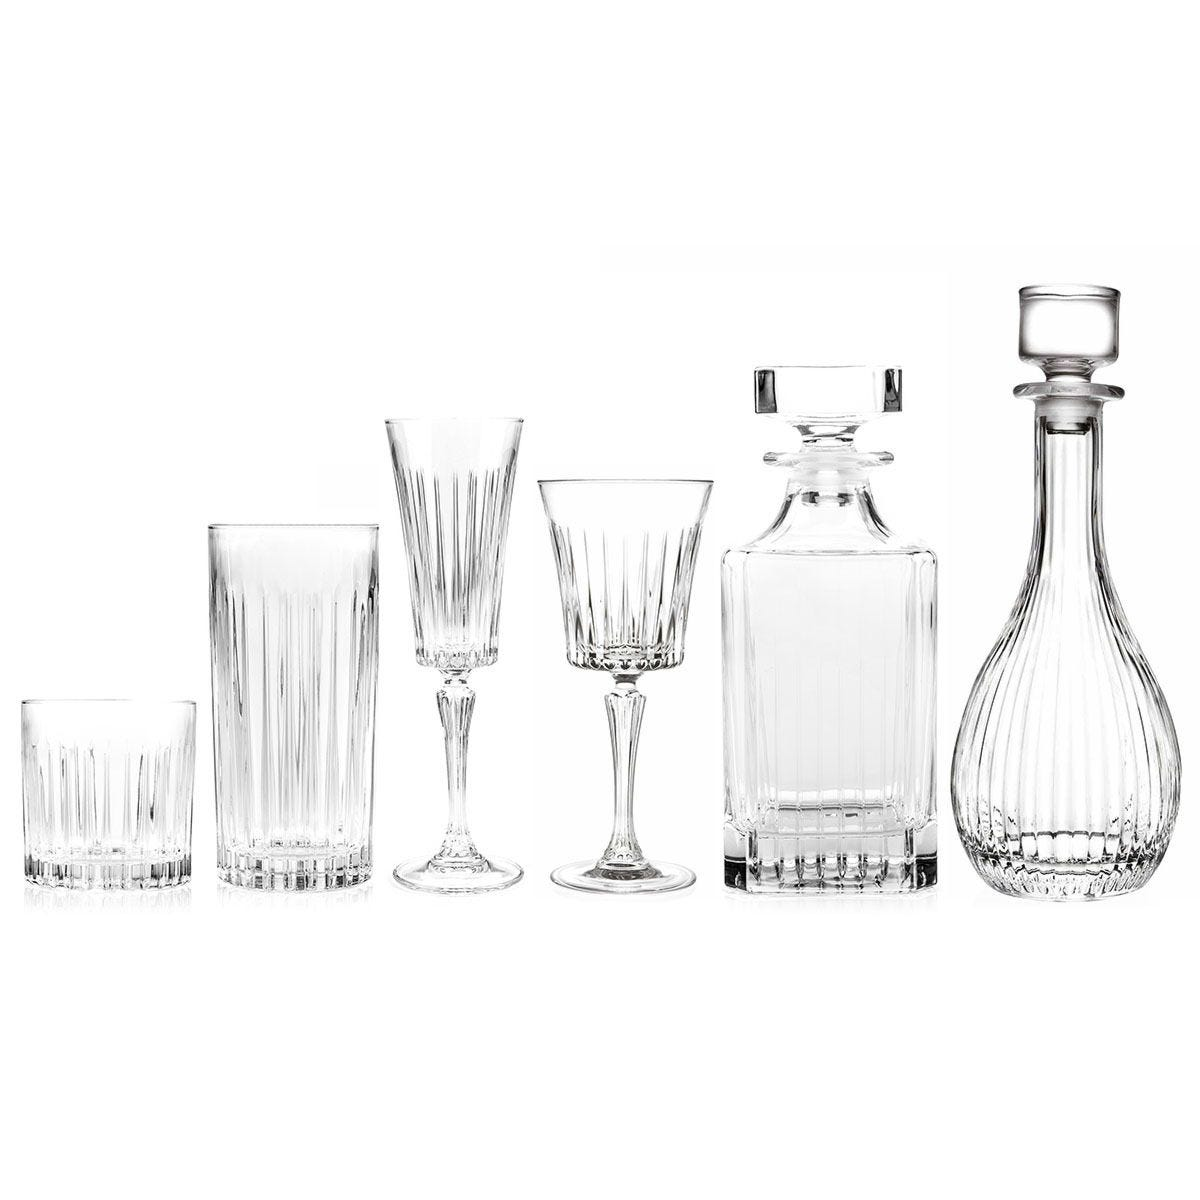 RCR Timeless Luxion Crystal Drinkware Collection with Decanters - 26 Piece